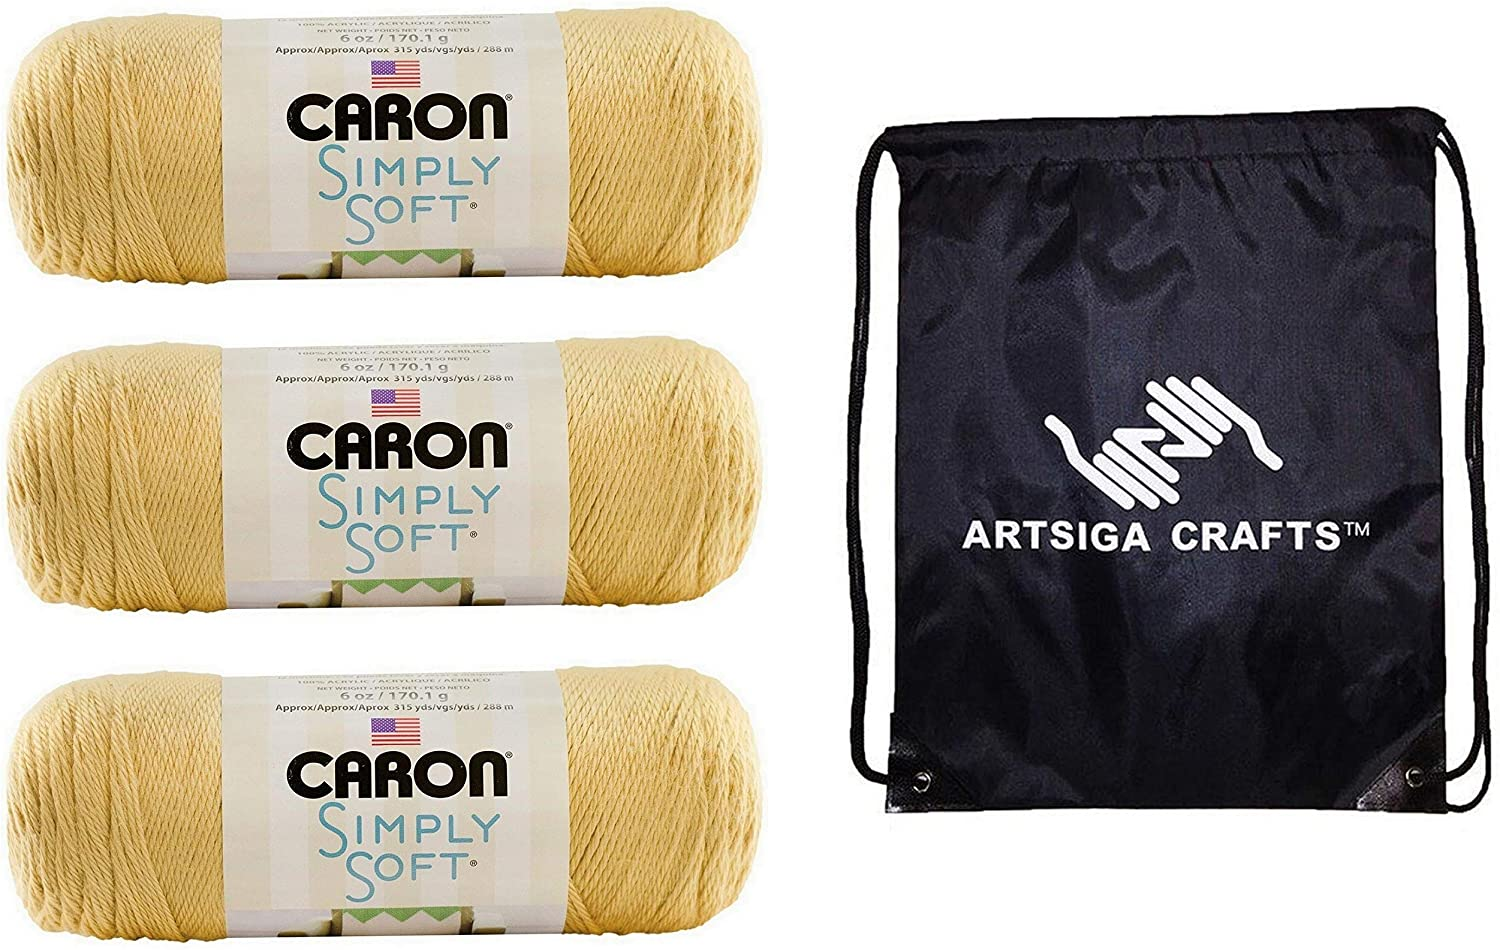 Caron Knitting Yarn Simply Soft Collection Autumn Maize 3-Skein Factory Pack (Same Dyelot) H97COL-8 Bundle with 1 Artsiga Crafts Project Bag